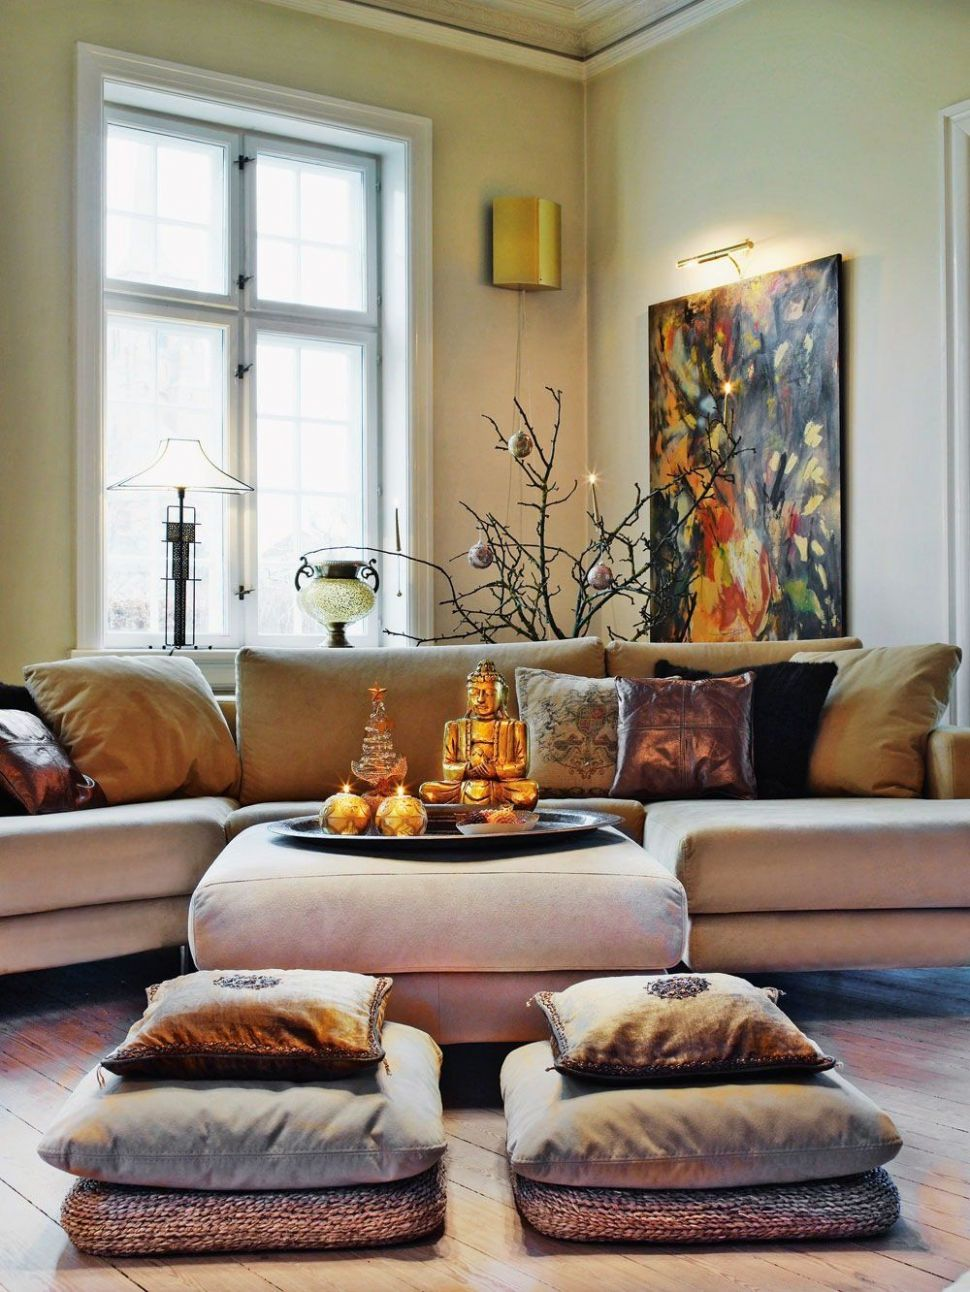 8 Meditation Room Ideas that Will Improve Your Life | Asian home ...